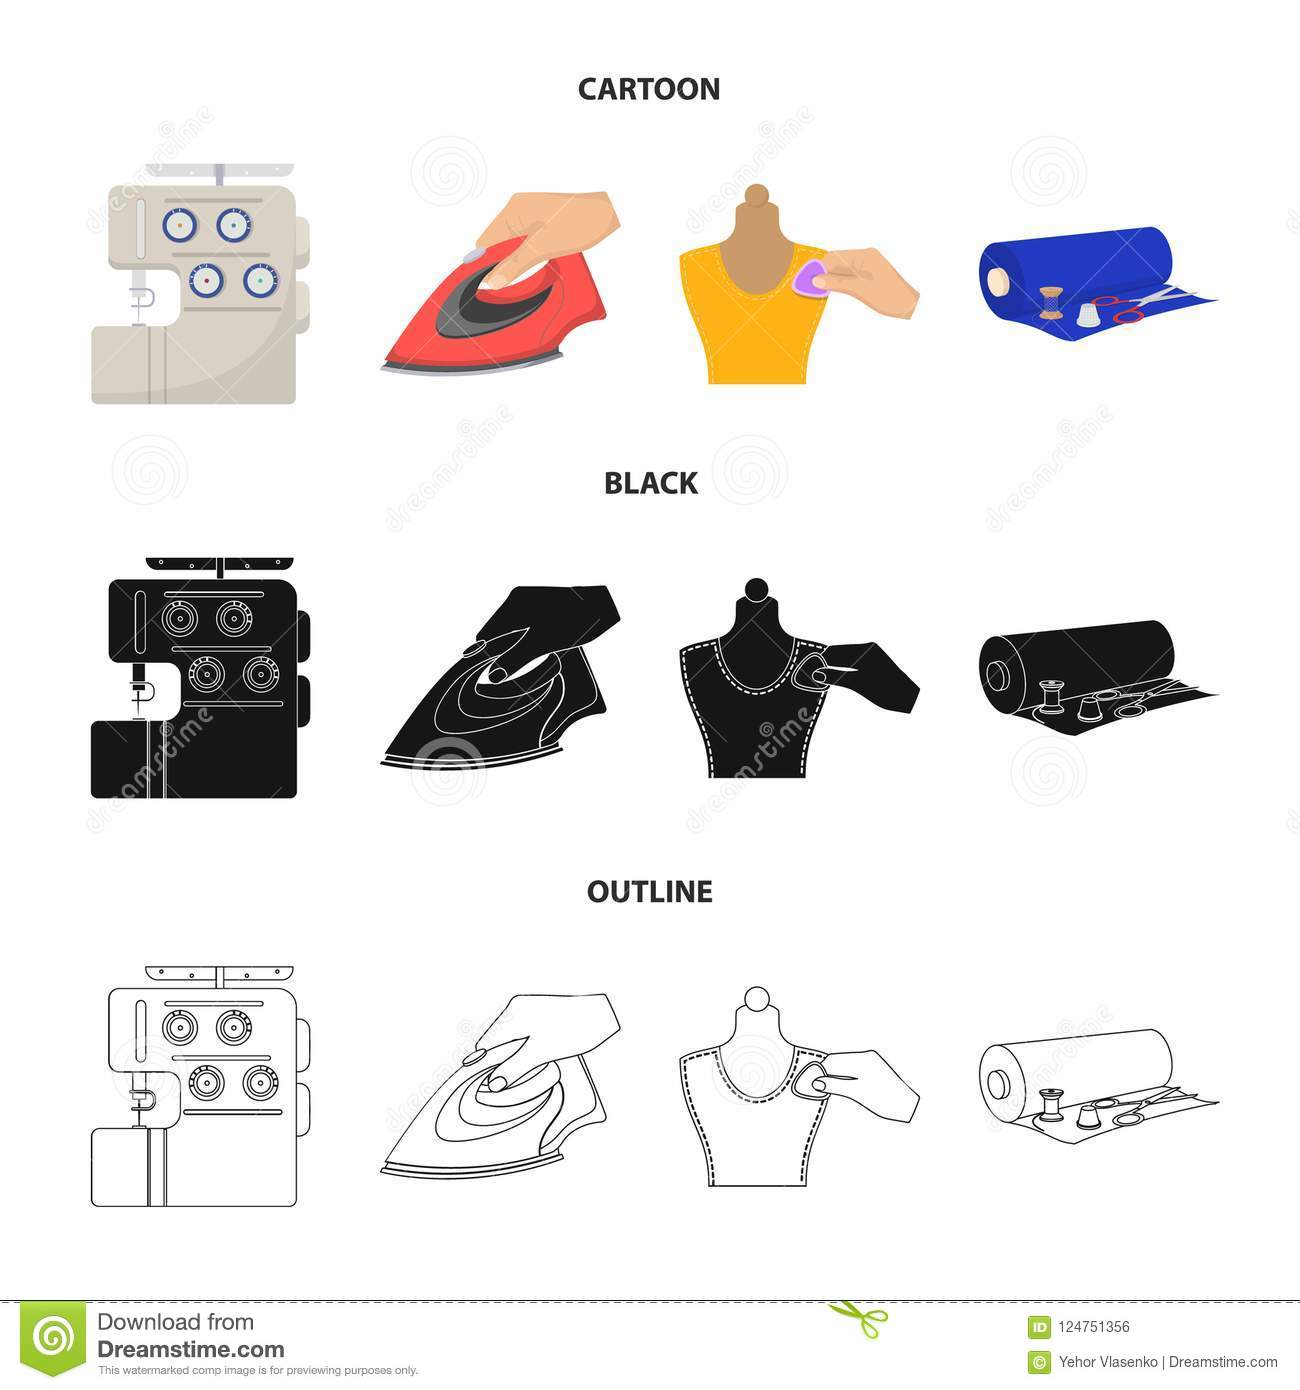 Electric Sewing Machine Iron For Ironing Marking With Chalk Diagram Download Clothes Roll Of